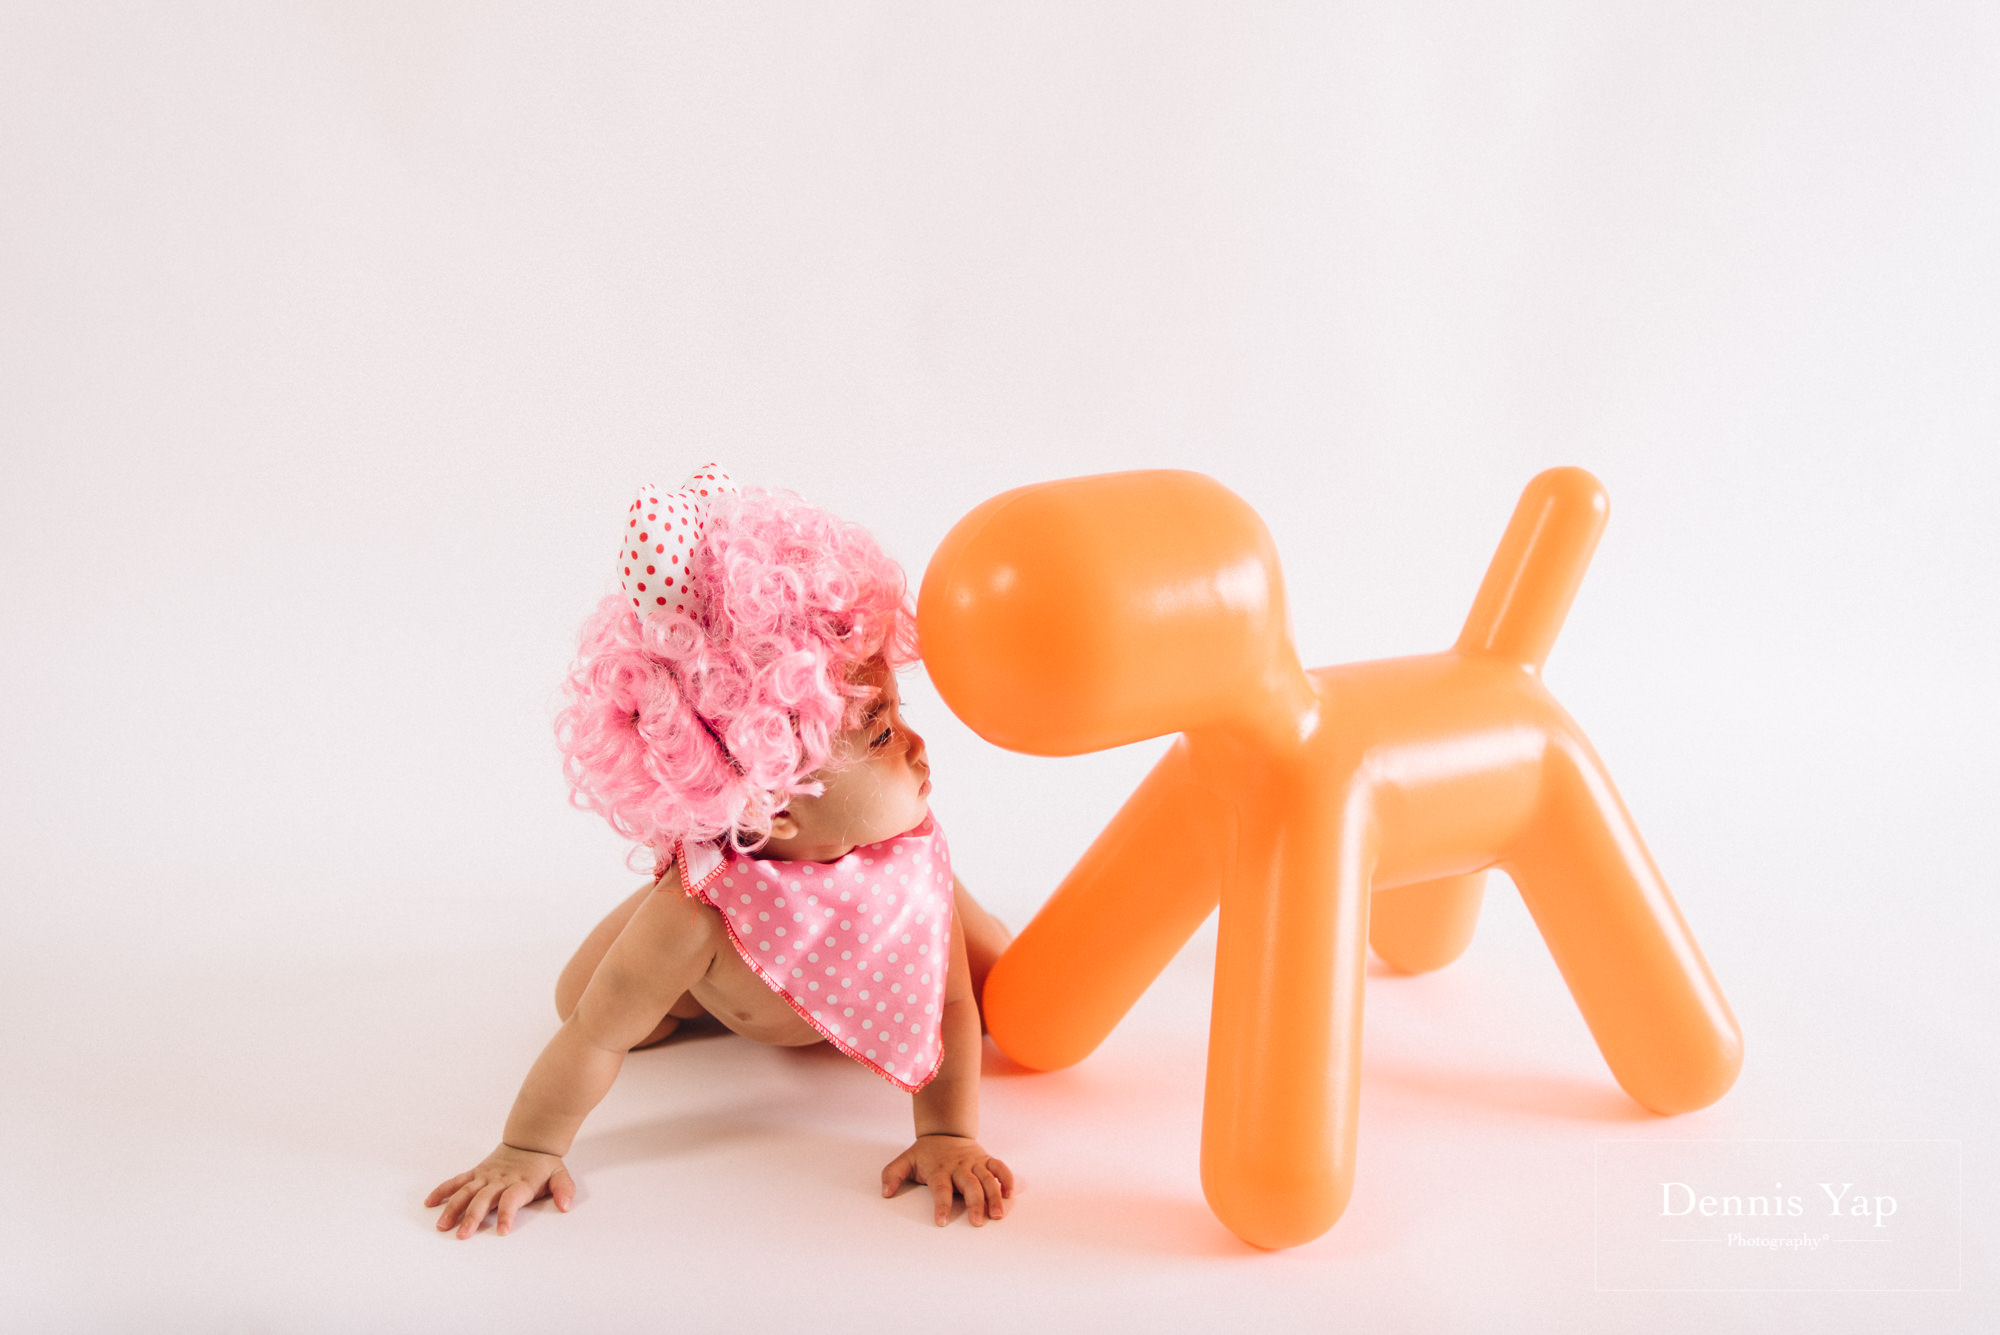 isaac evon family baby portrait funny style dennis yap photography-9.jpg